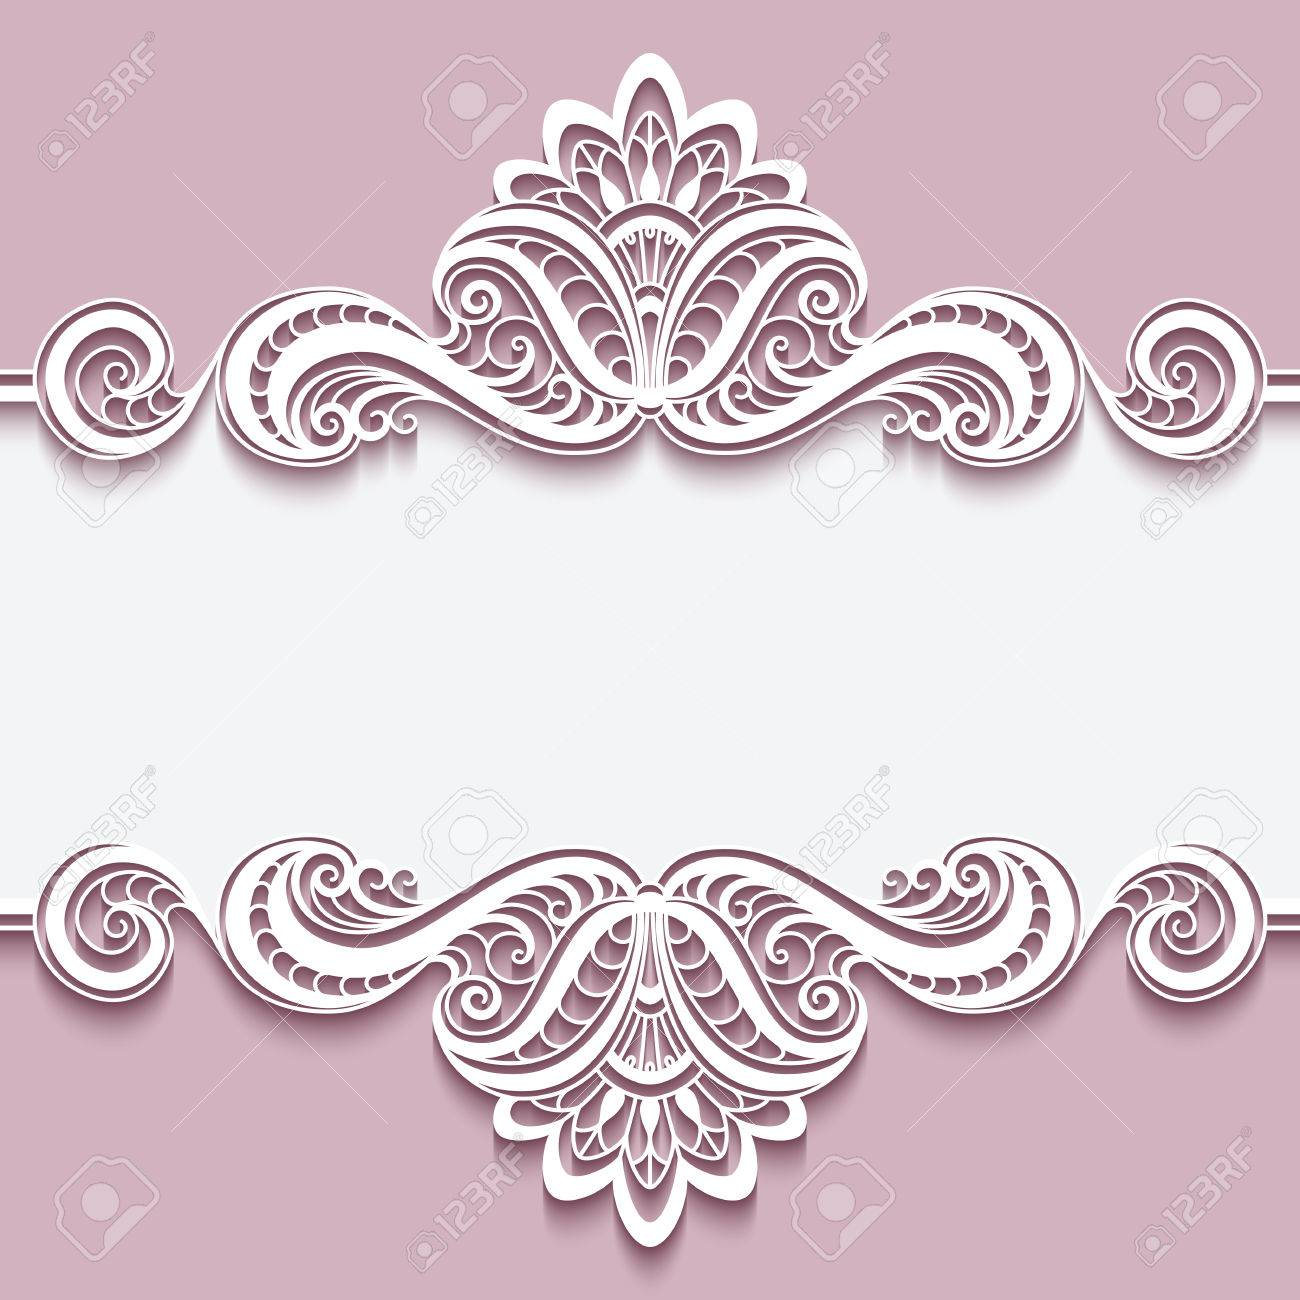 Elegant cutout paper frame with lace border ornament greeting elegant cutout paper frame with lace border ornament greeting card or invitation template stock stopboris Gallery